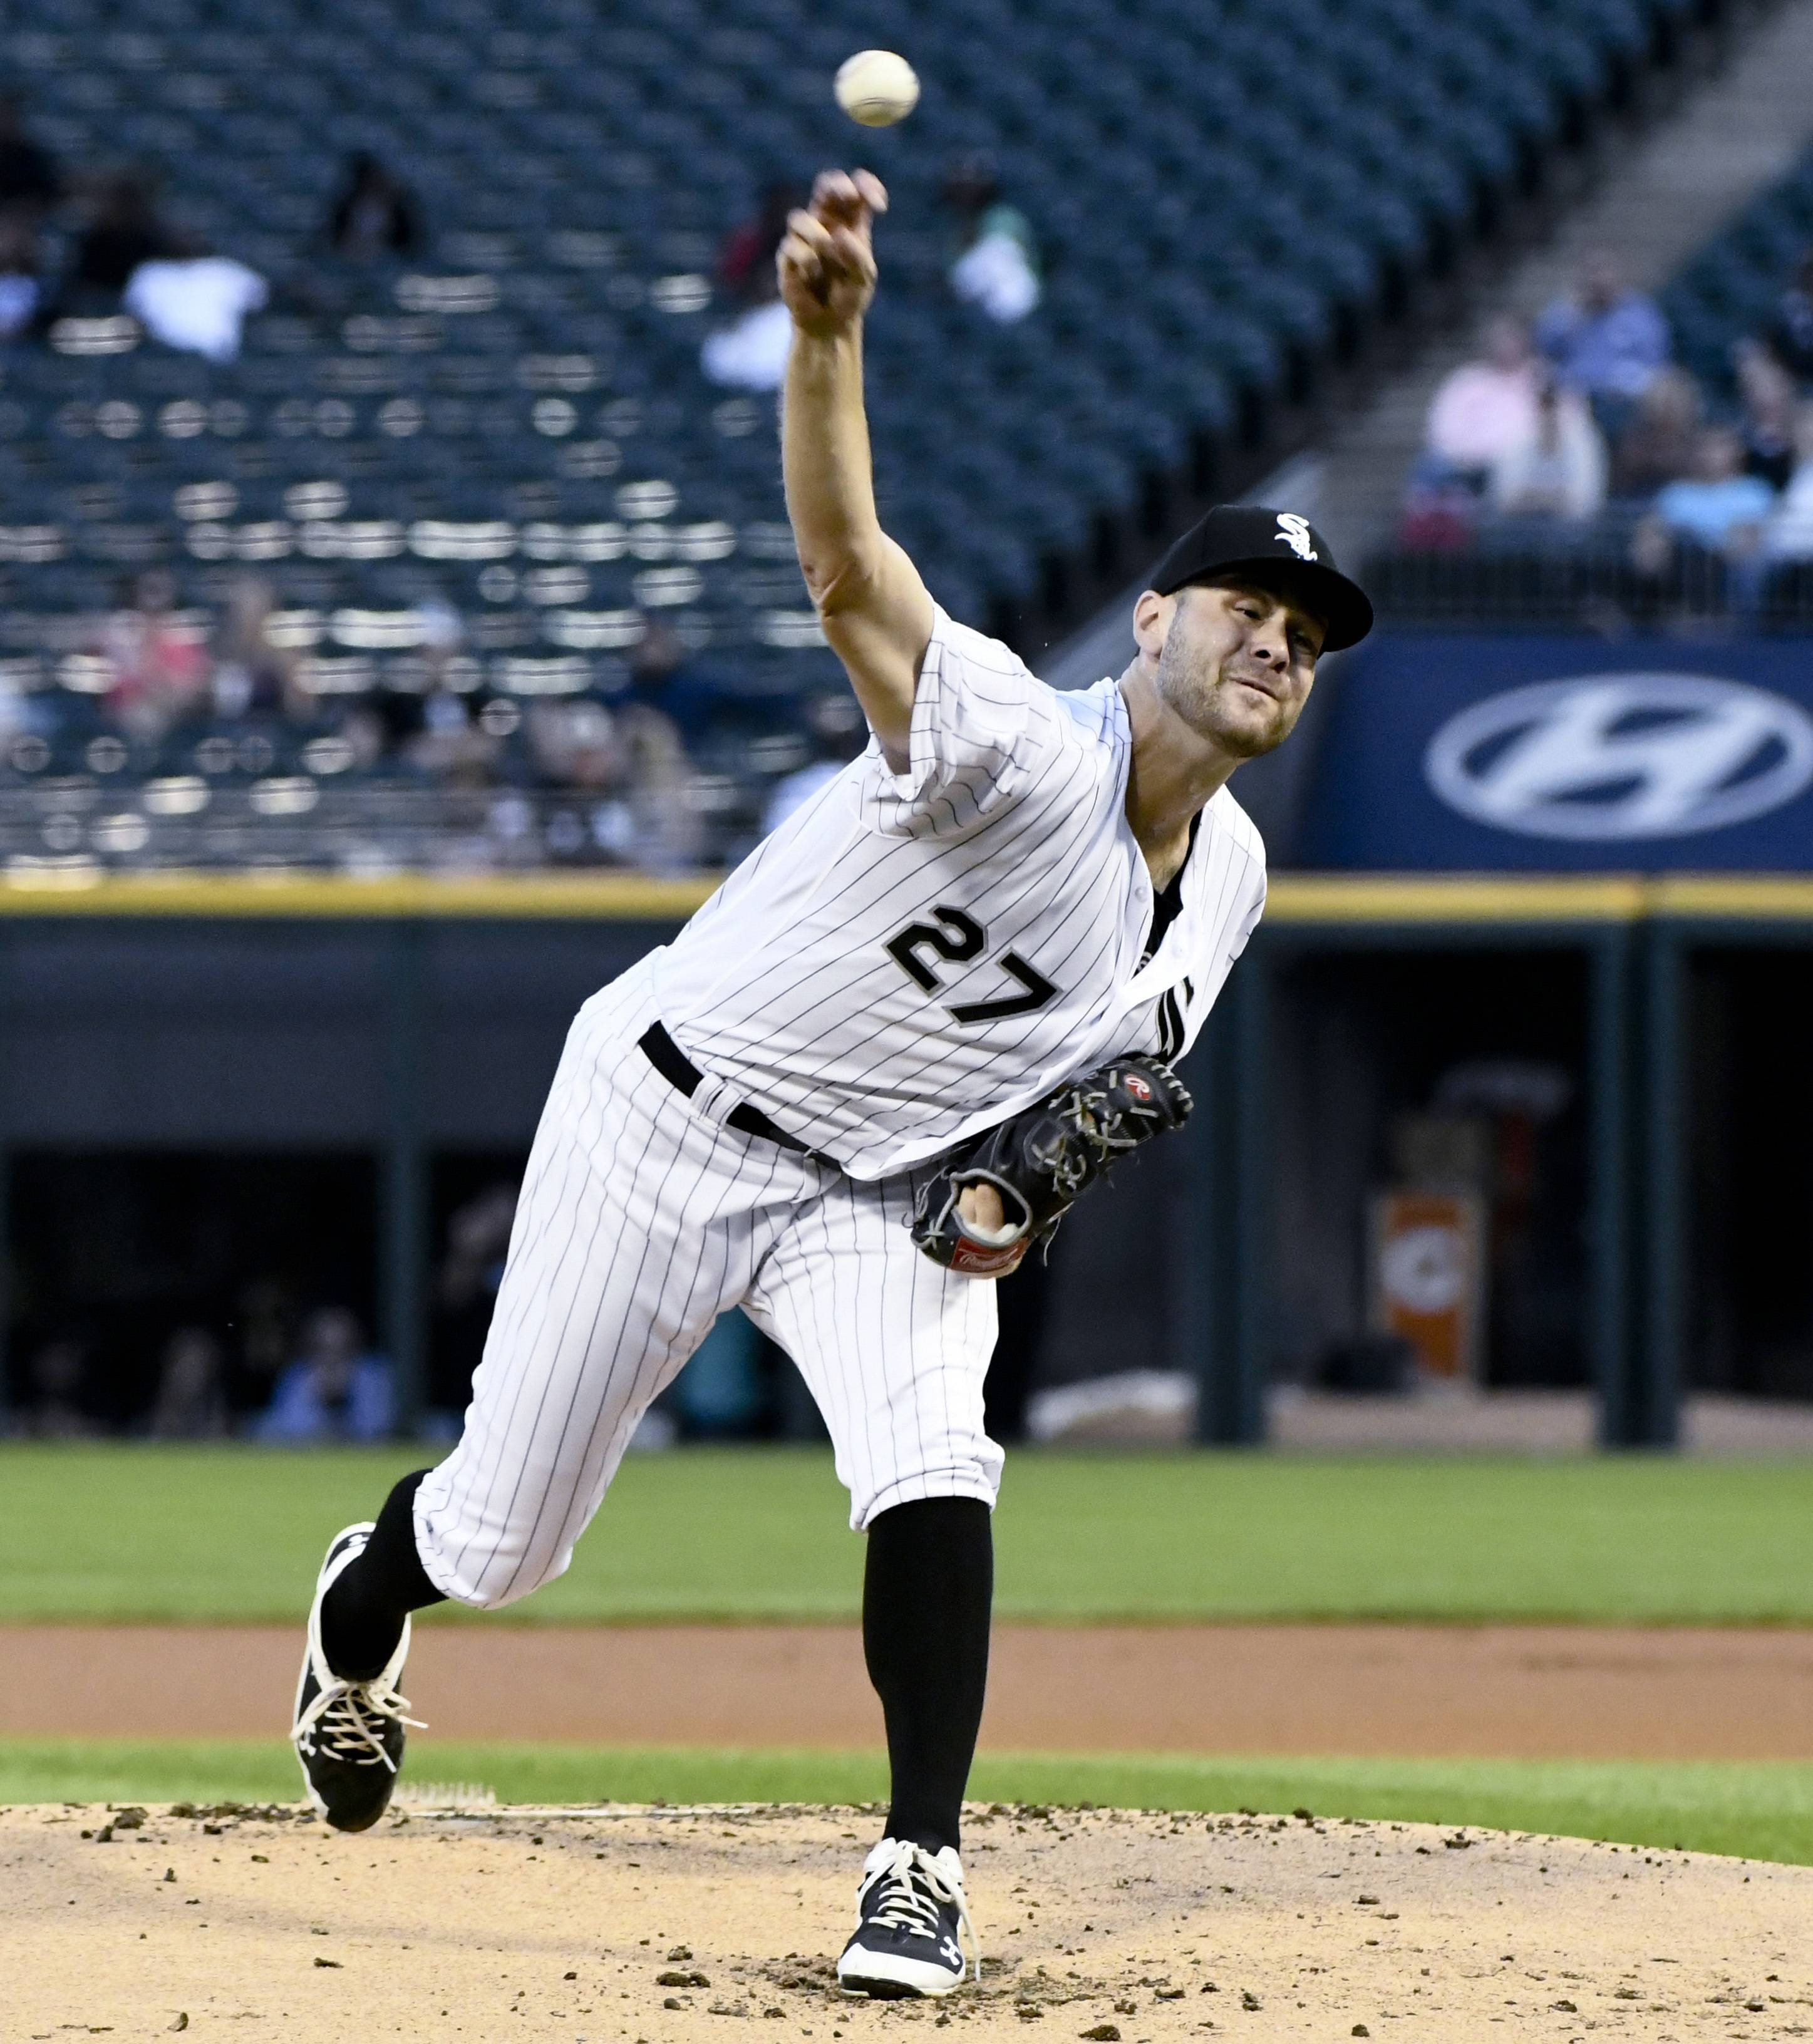 Chicago White Sox starting pitcher Lucas Giolito delivers against the Minnesota Twins during the first inning of a baseball game in Chicago on Tuesday, Aug. 22, 2017. (AP Photo/Matt Marton)